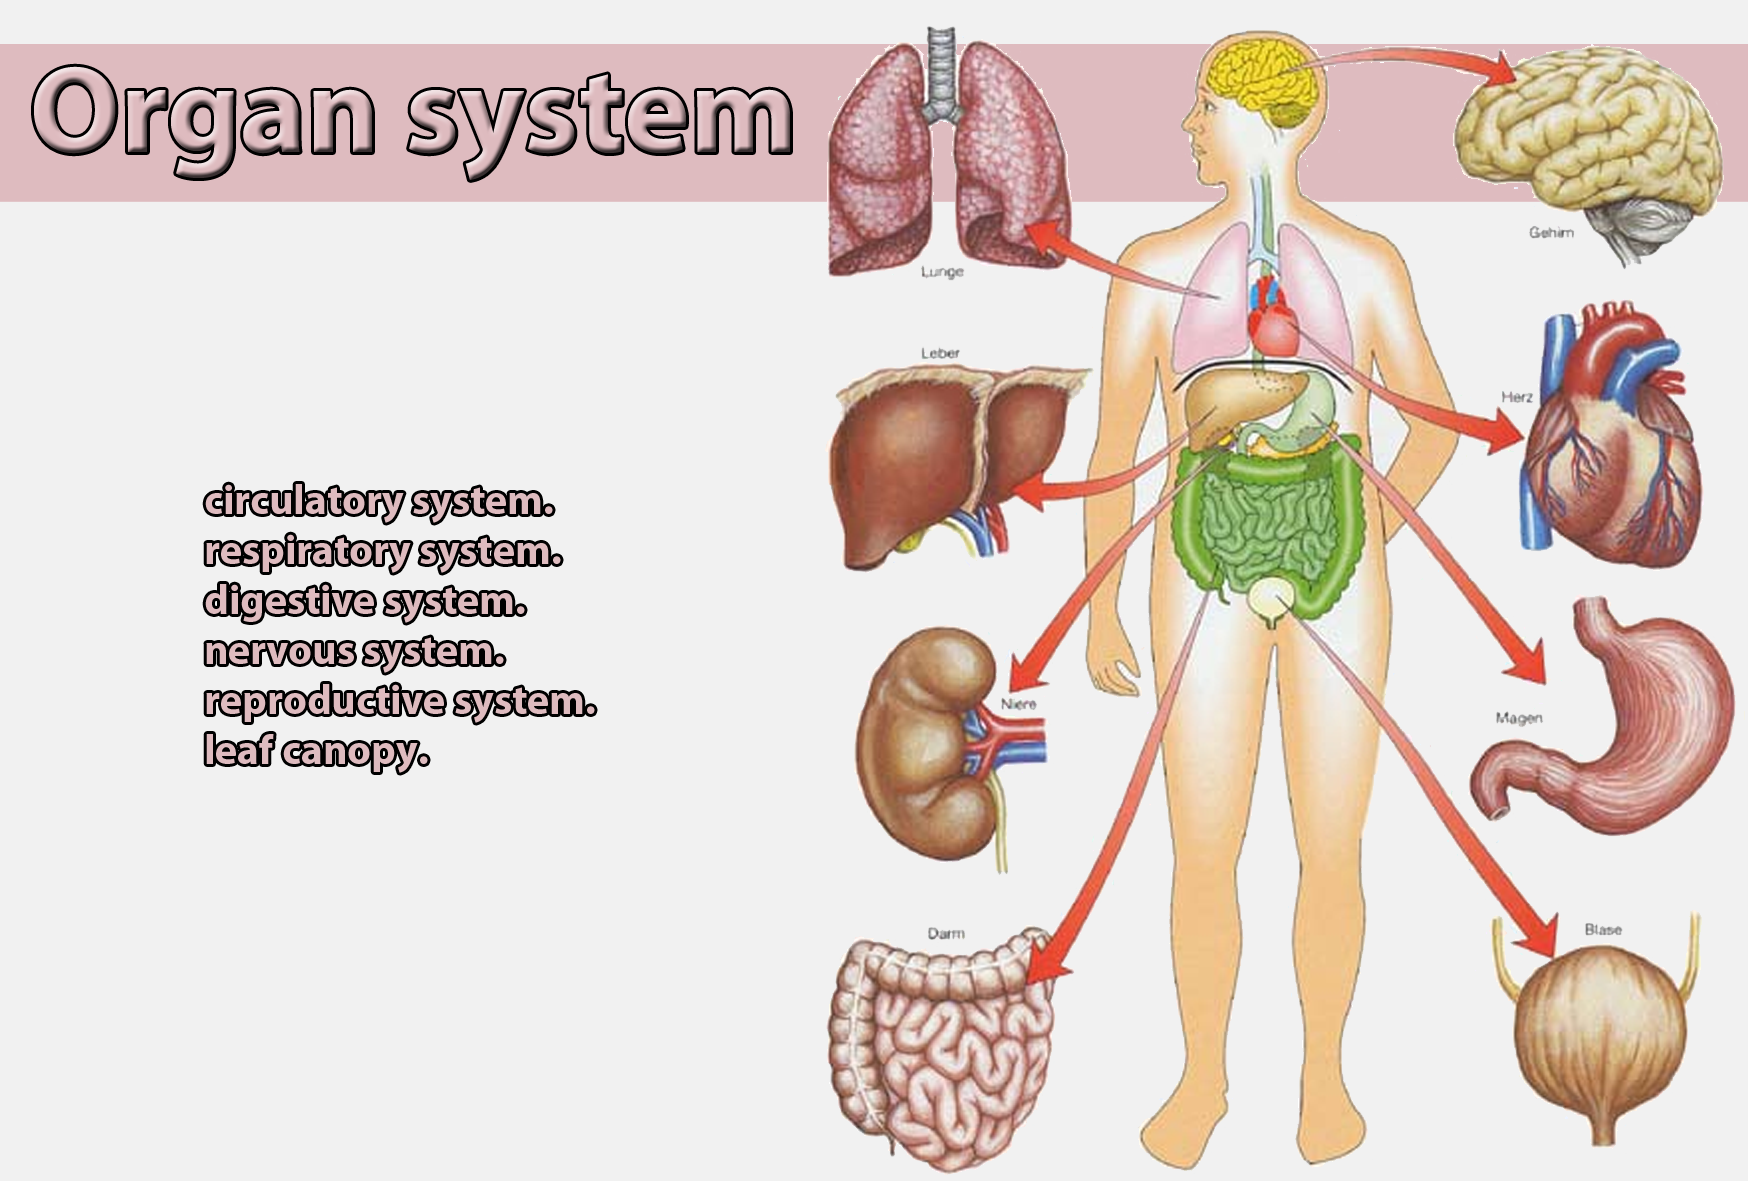 Pictures of human organ systems